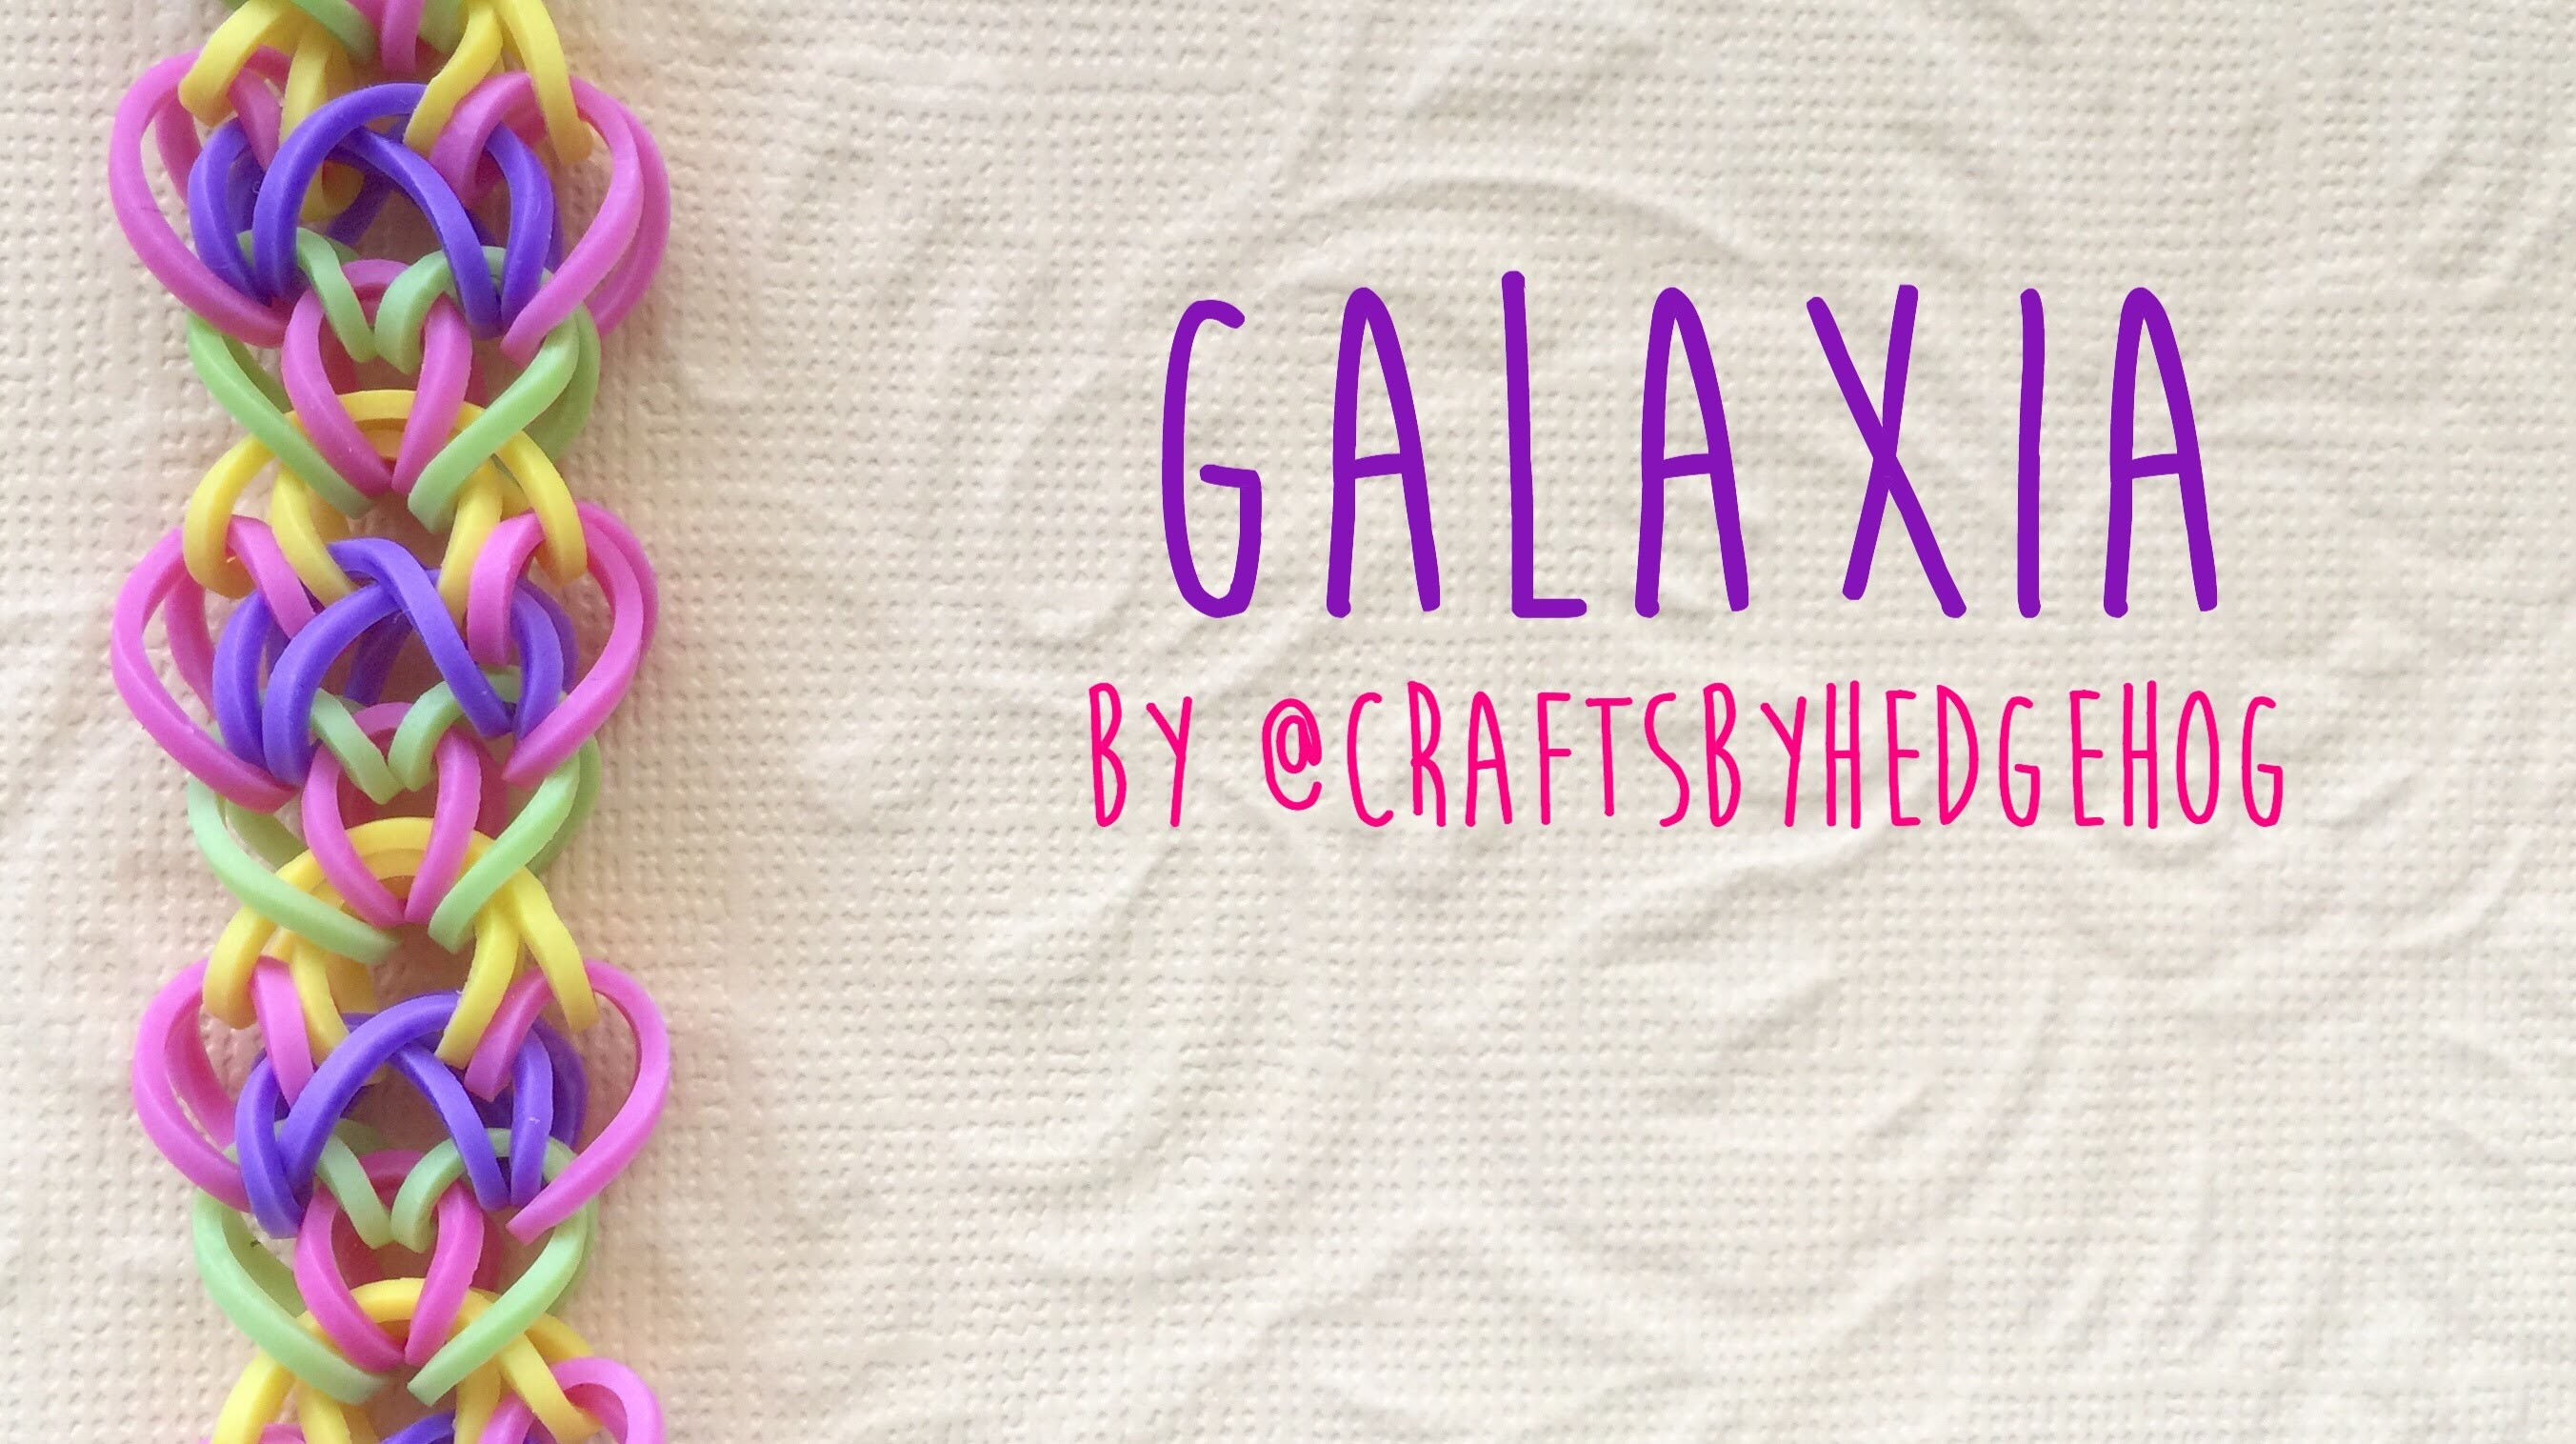 Rainbow Loom Bands Galaxia by @craftsbyhedgehog tutorial